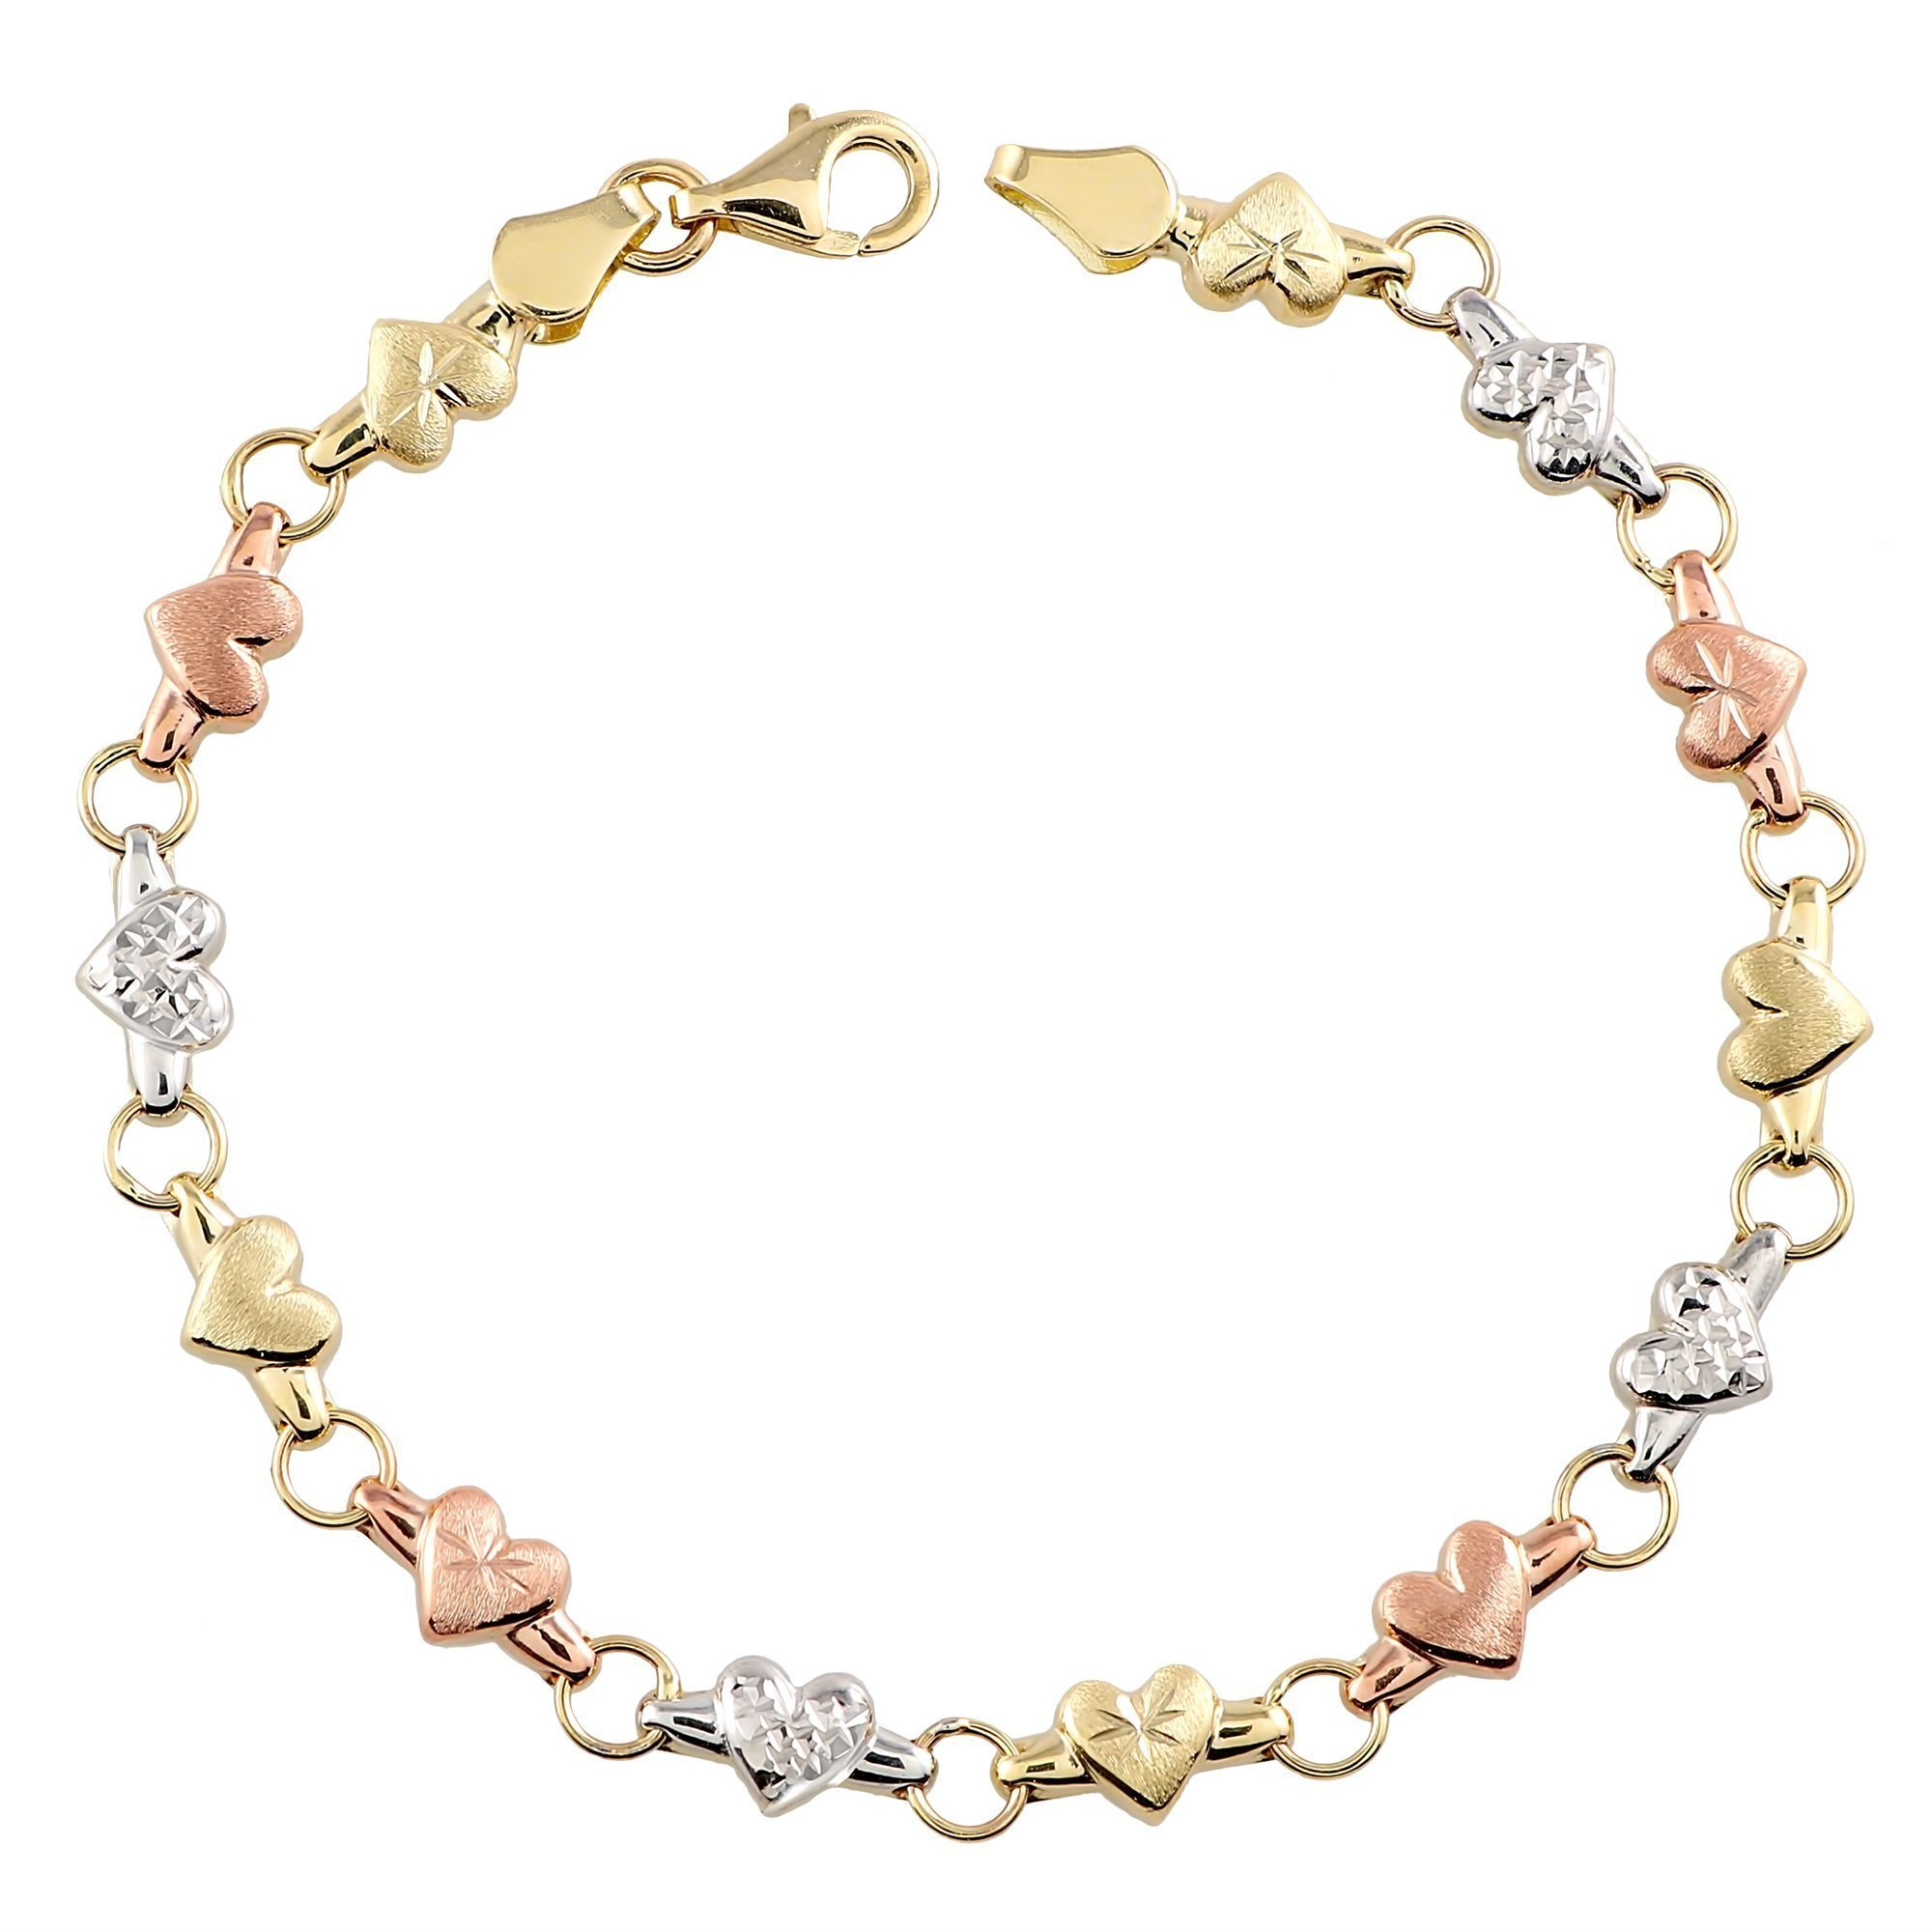 Tousi Gold Chain Link Bracelet- 14K Tri Color Jewelry Bracelets links – Cute Rose White Yellow Gift for Her - Size 7.25 Inches